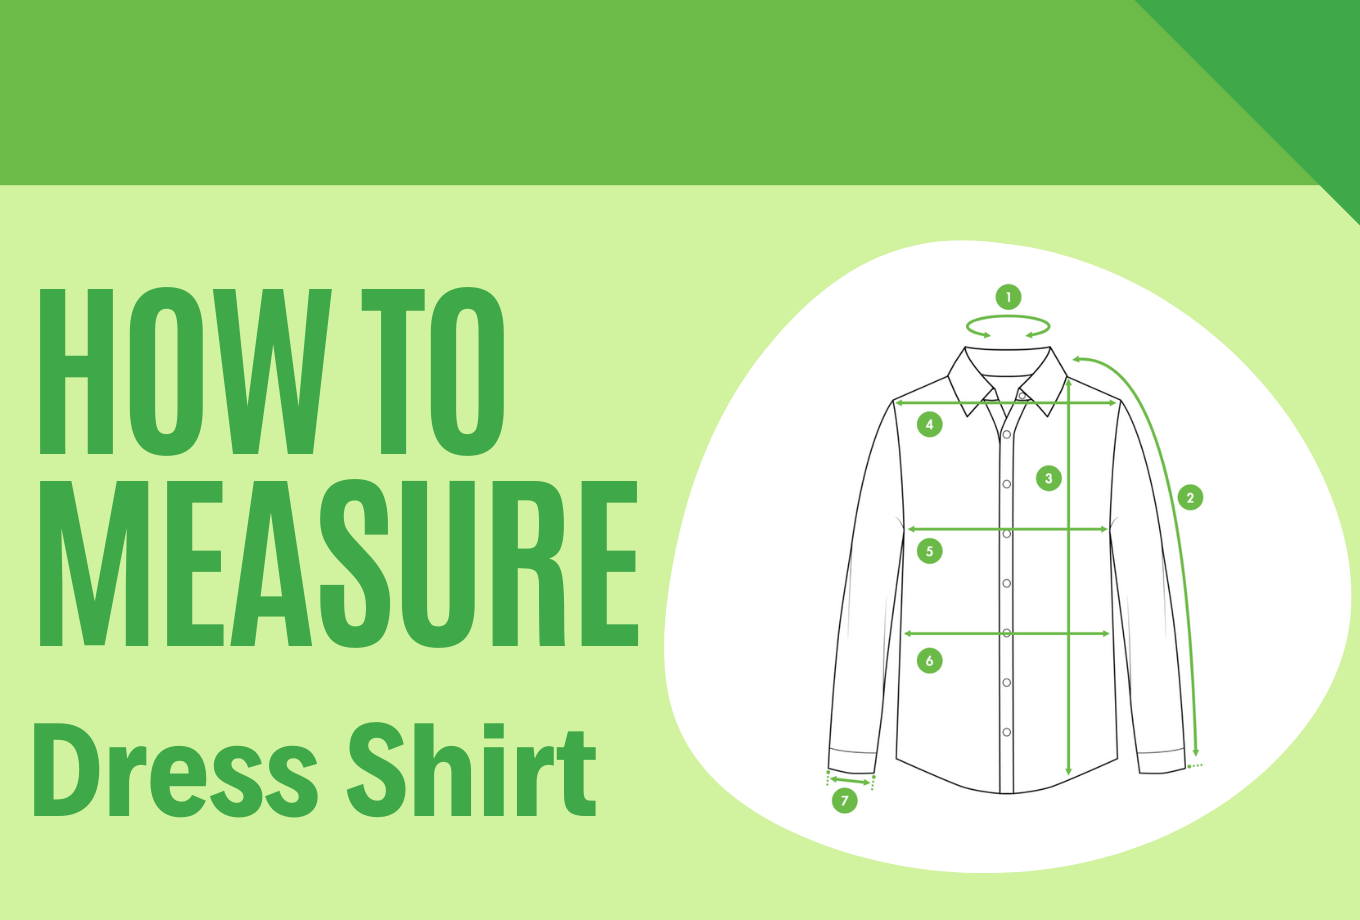 How to Measure a Dress Shirt